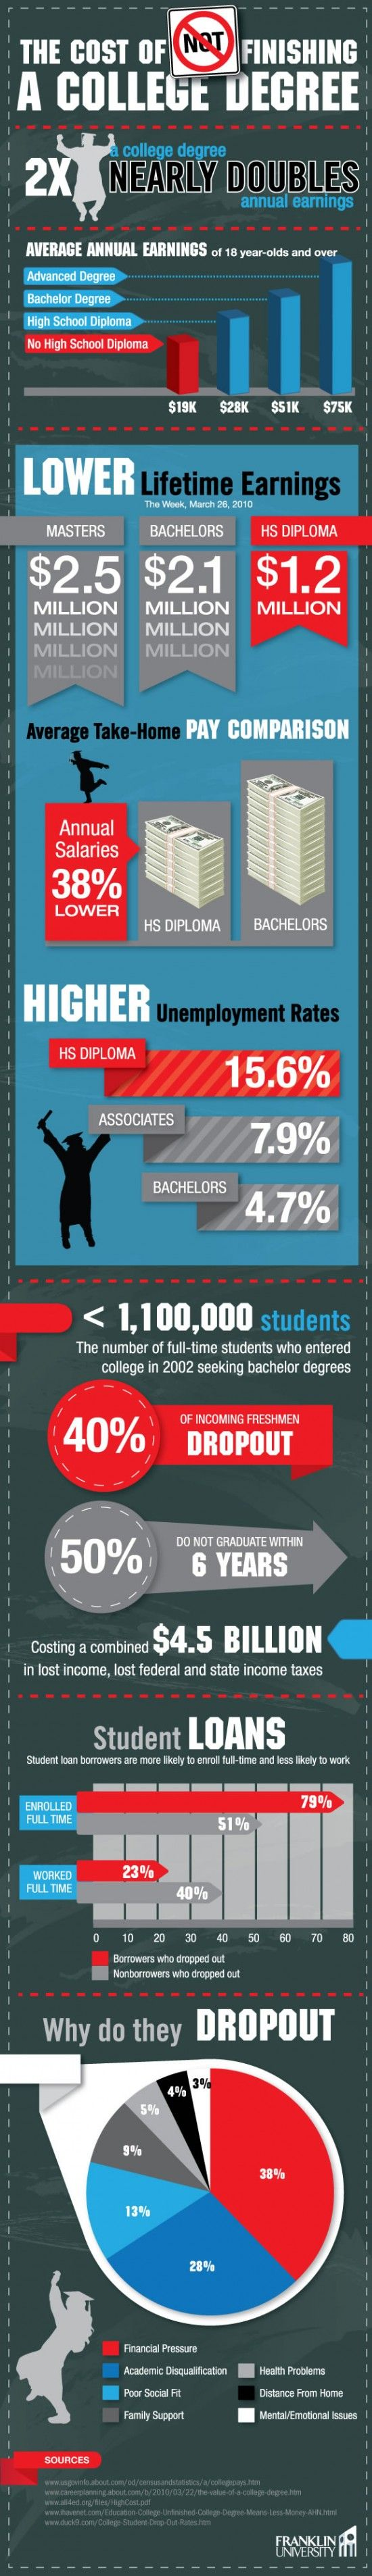 INFOGRAPHIC: THE COST OF NOT FINISHING YOUR COLLEGE DEGREE    Not finishing your college degree can cost you some serious money over the long run. This graphic represents average differences in income over a lifetime between individuals with a high school diplomas, a bachelor's degree, or a graduate degree.